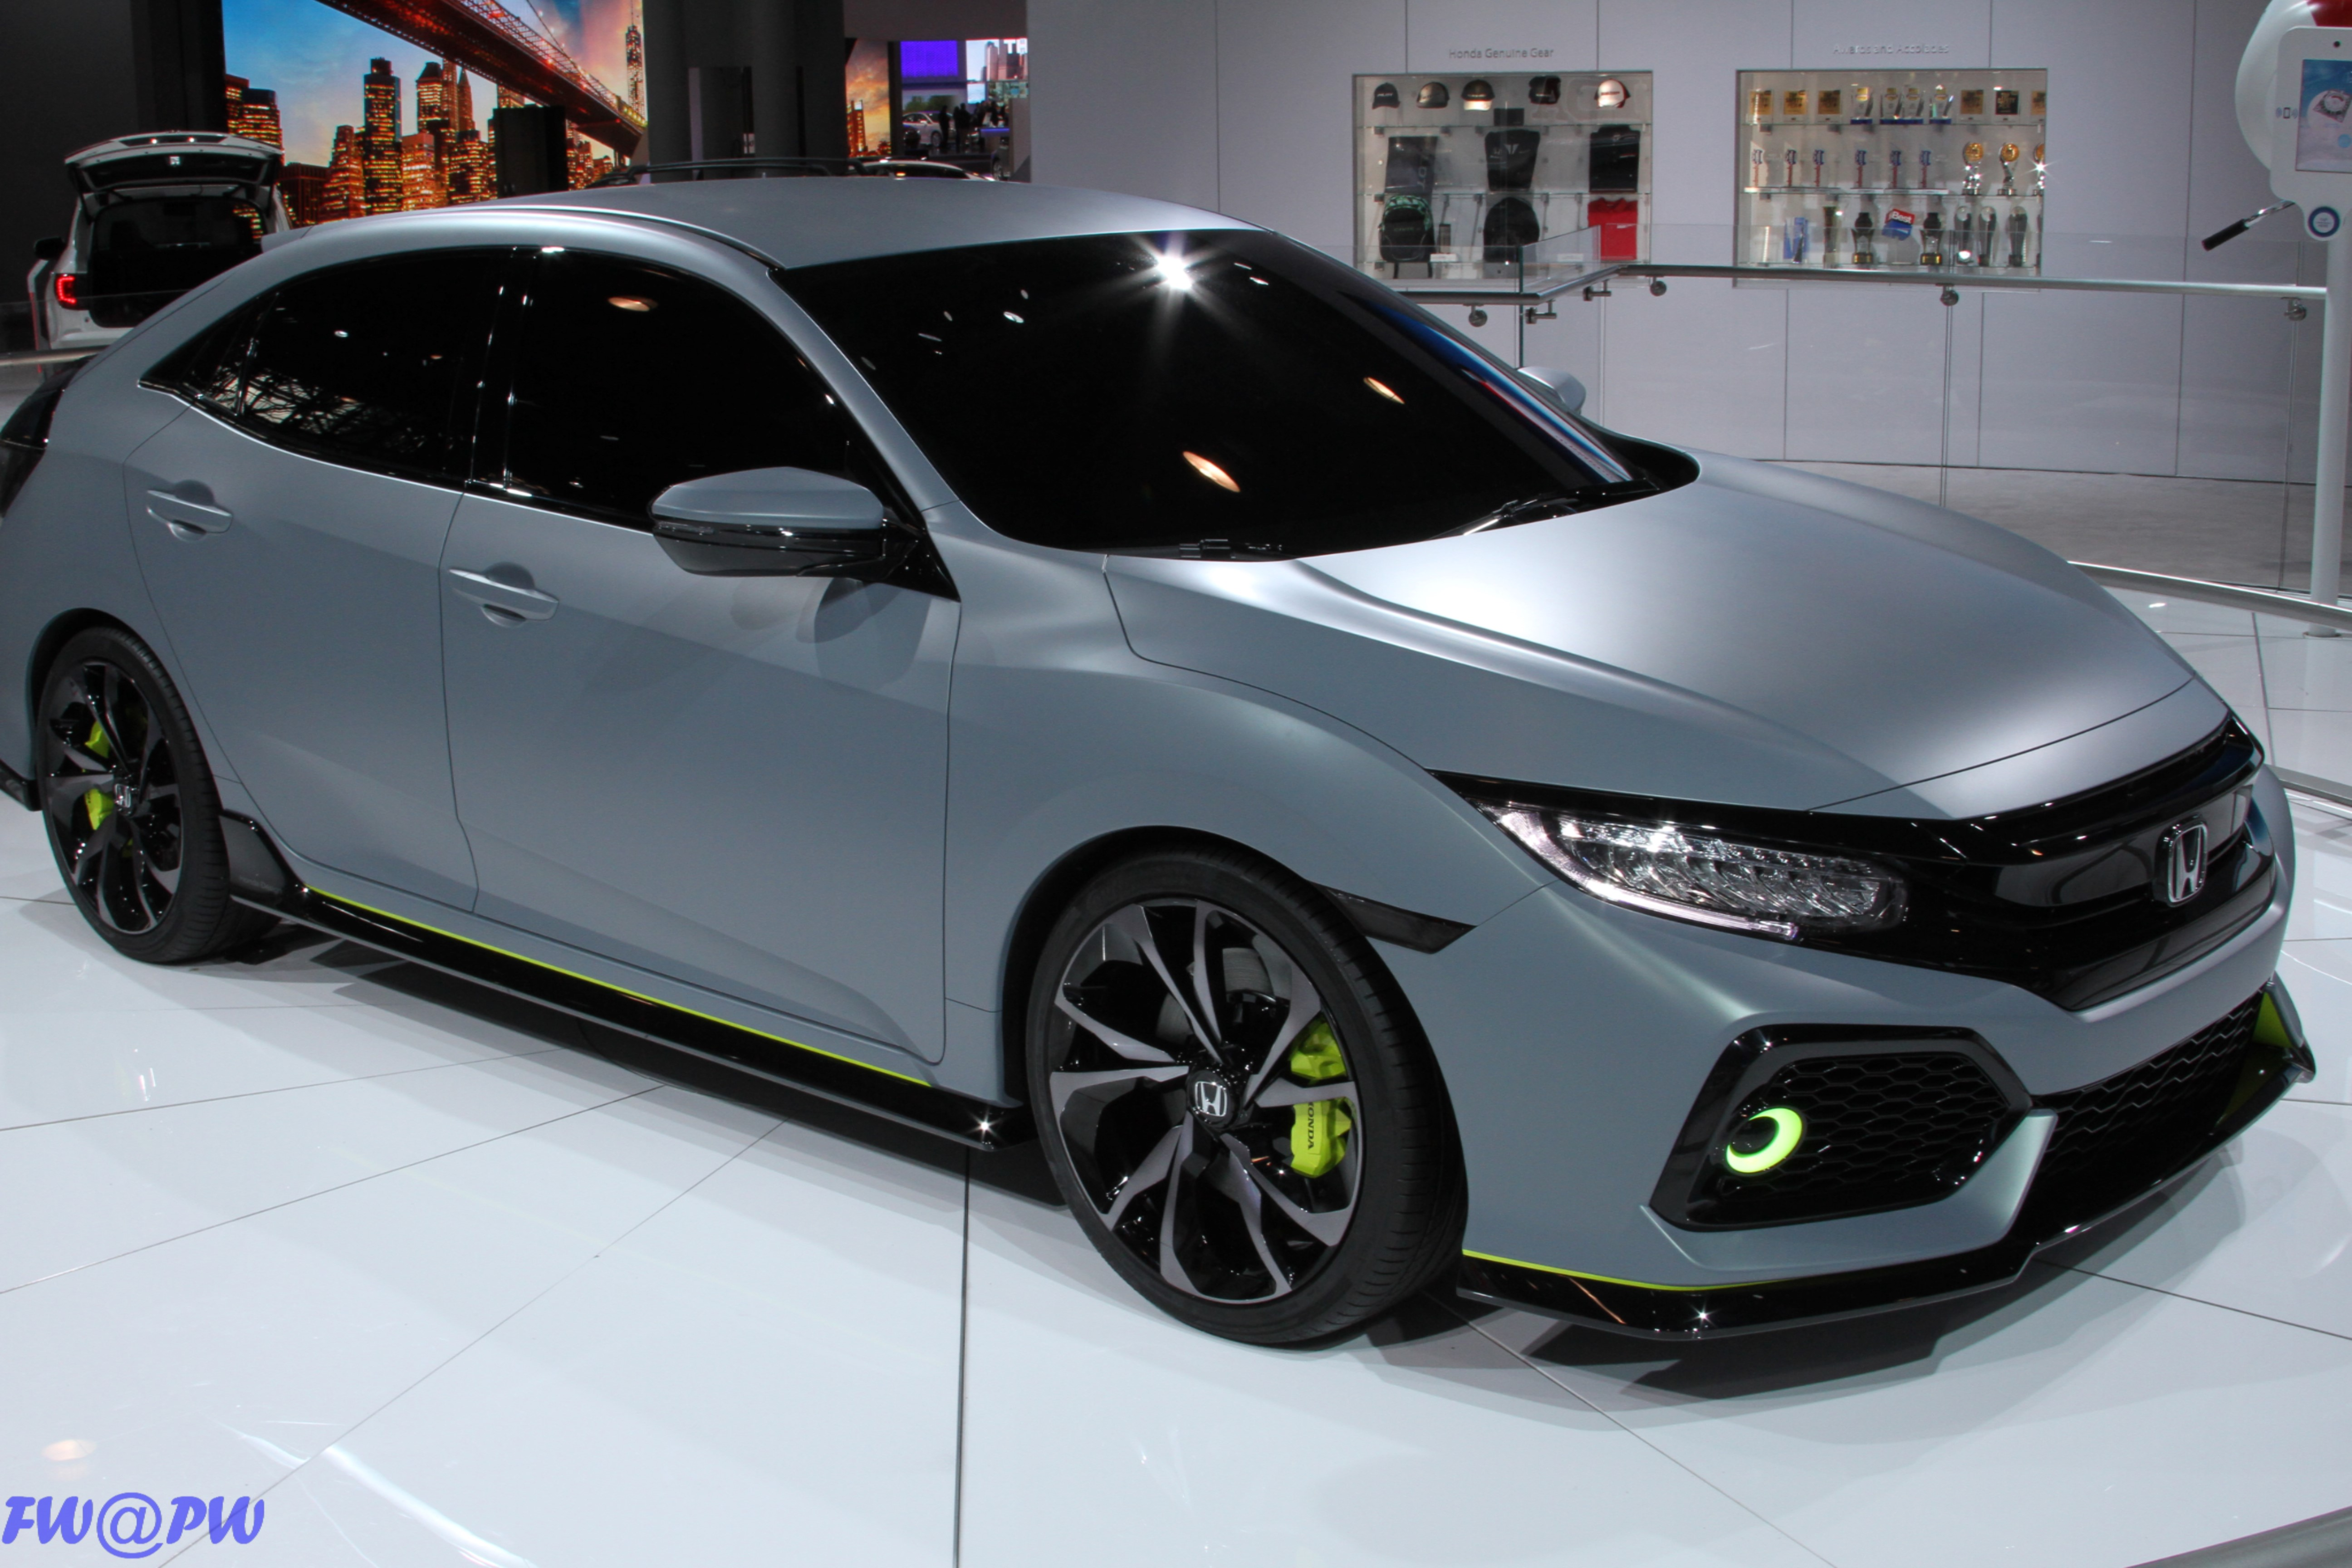 2017 Civic X Hatchback is Almost Here! - PakWheels Blog